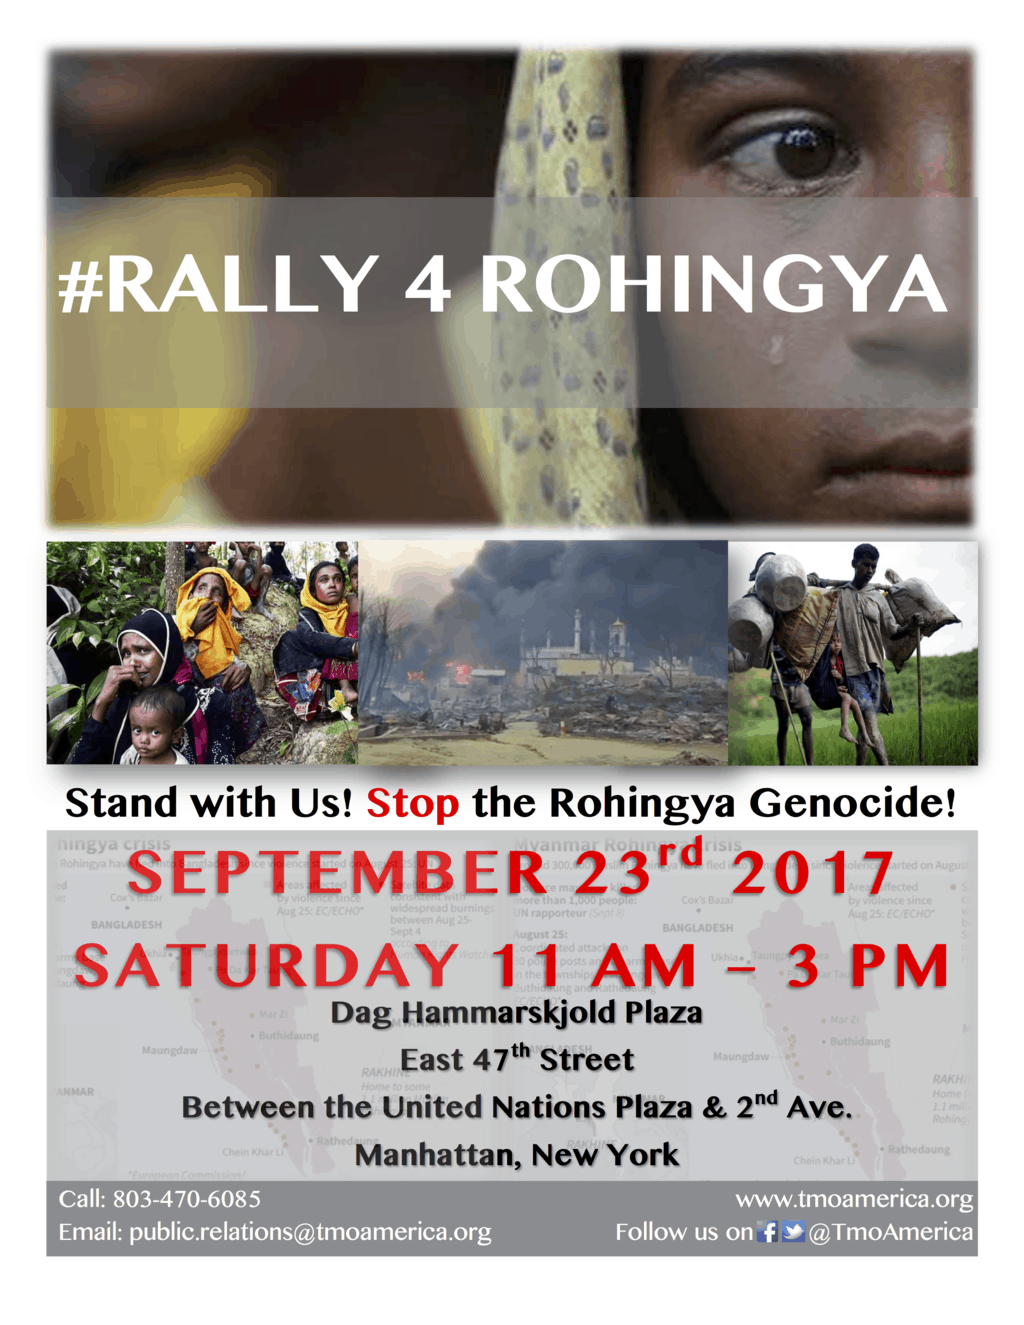 #rally4rohingya